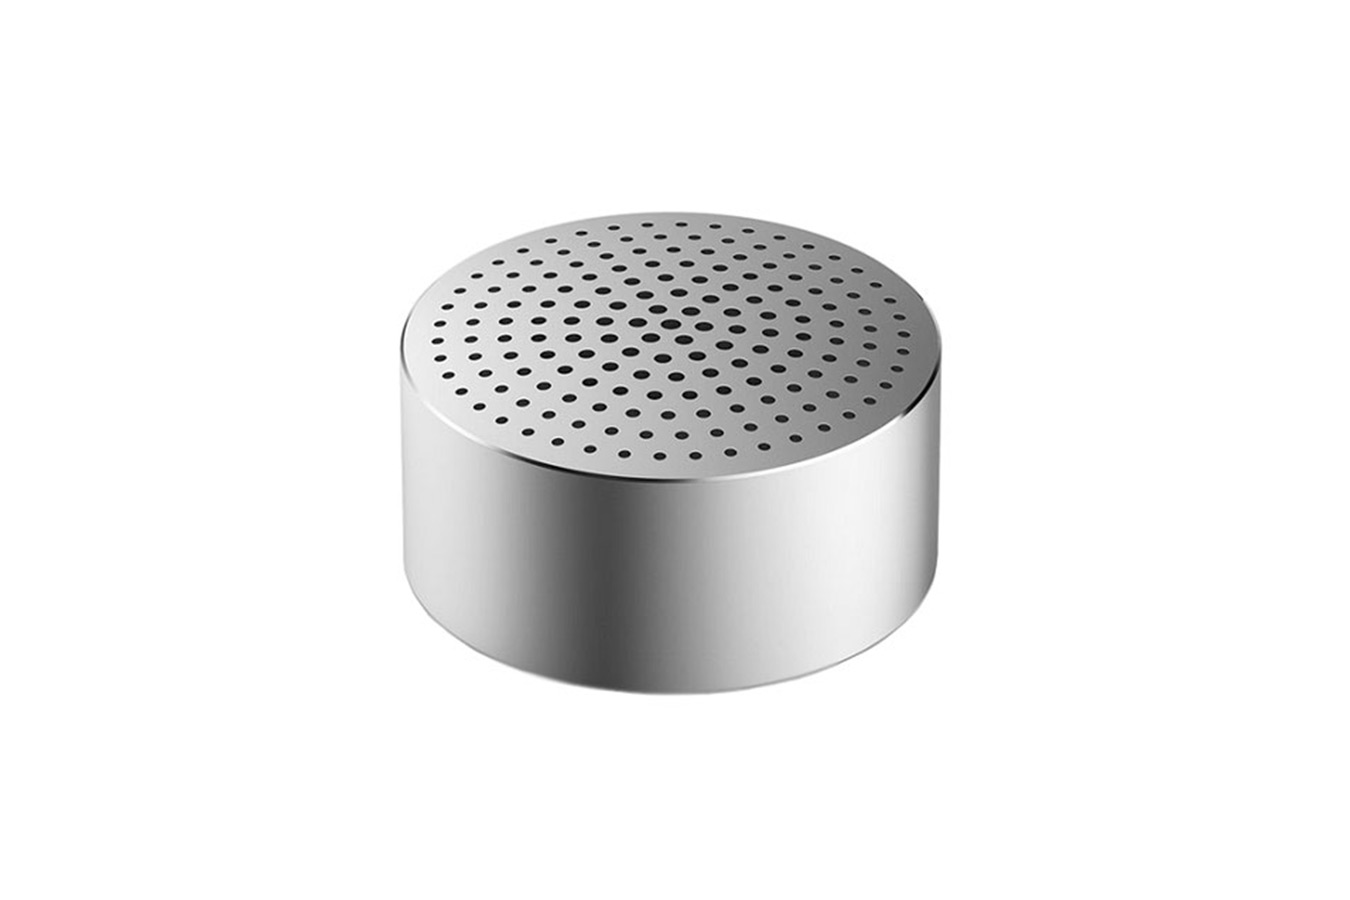 Портативная колонка Xiaomi Mi Portable Round Box Bluetooth Speaker серебристого цвета